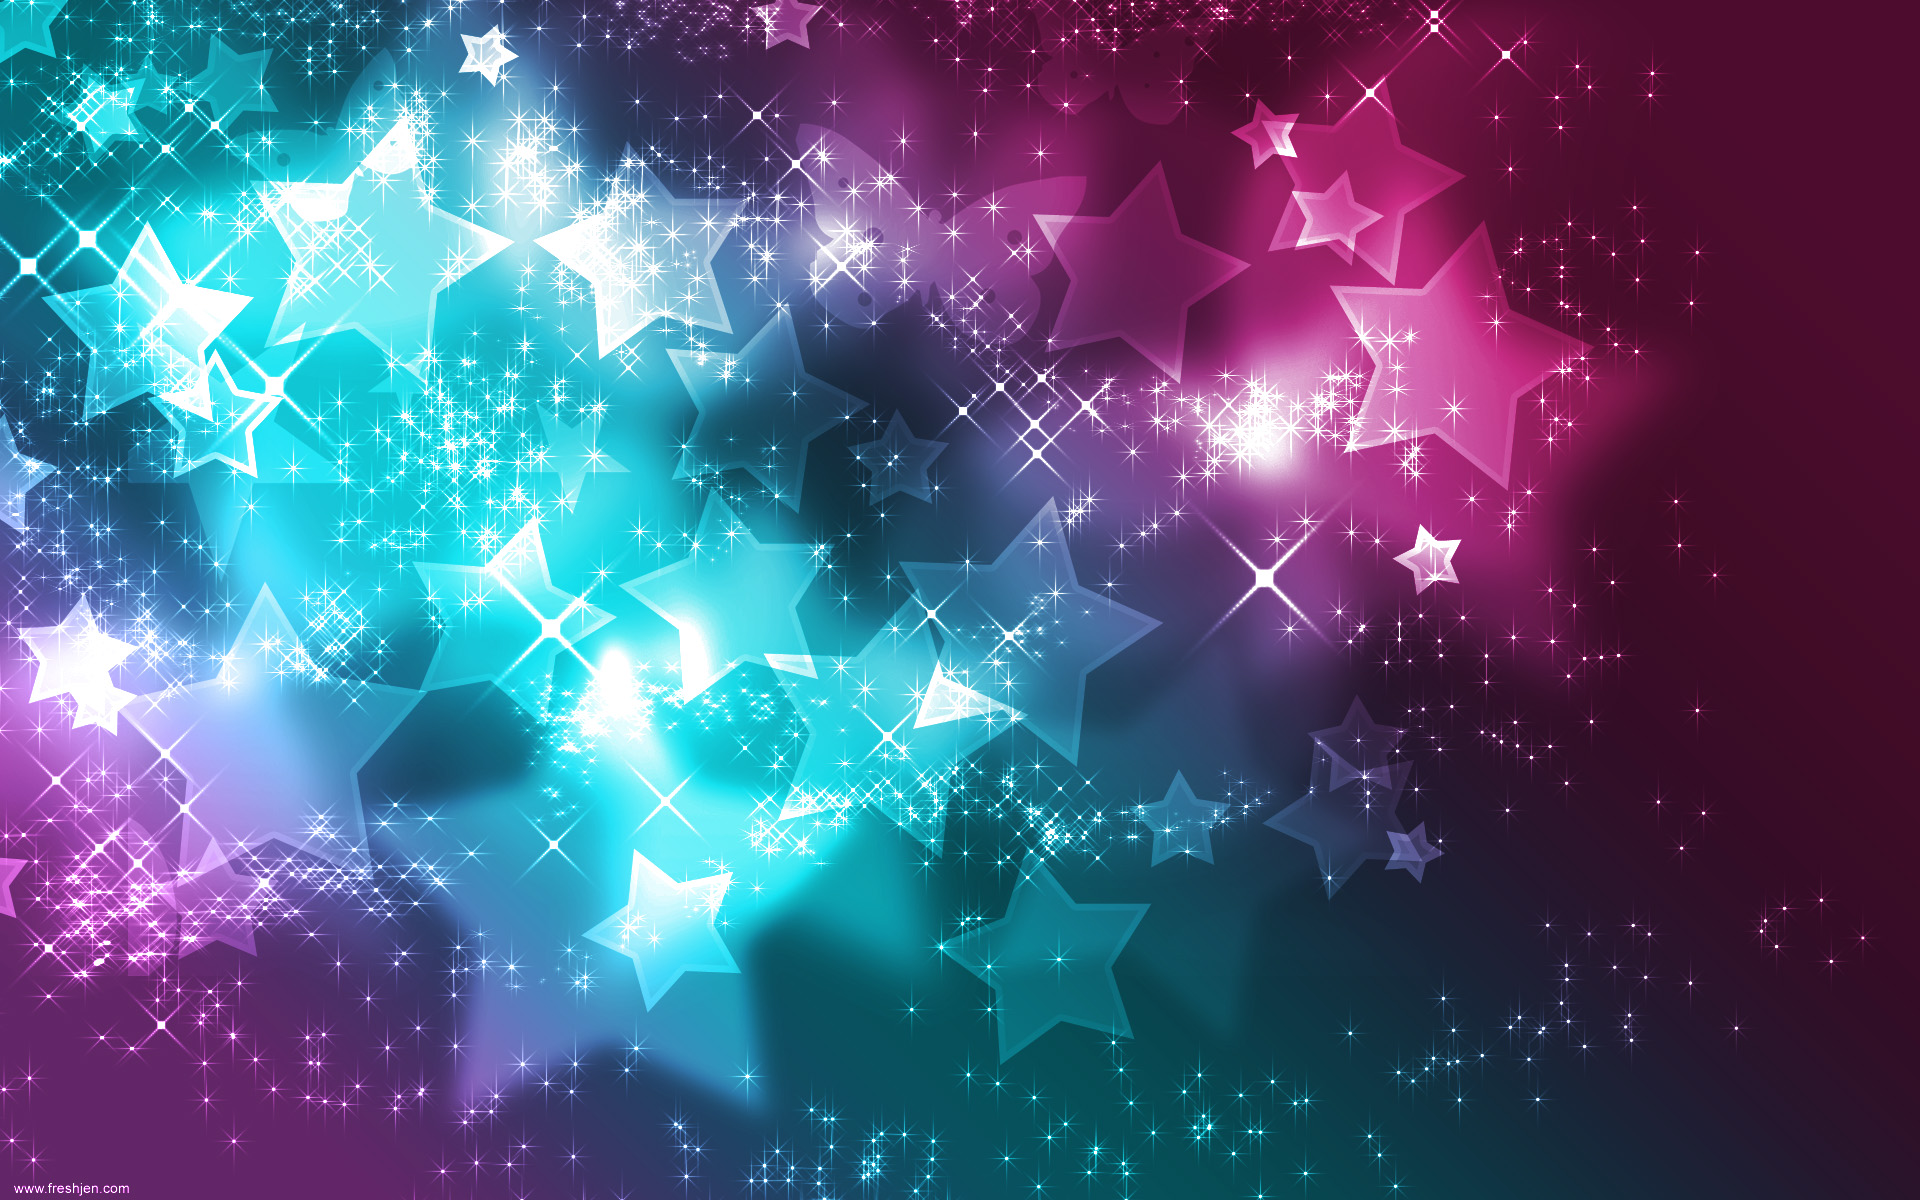 Sparkly Stars Backgrounds Free